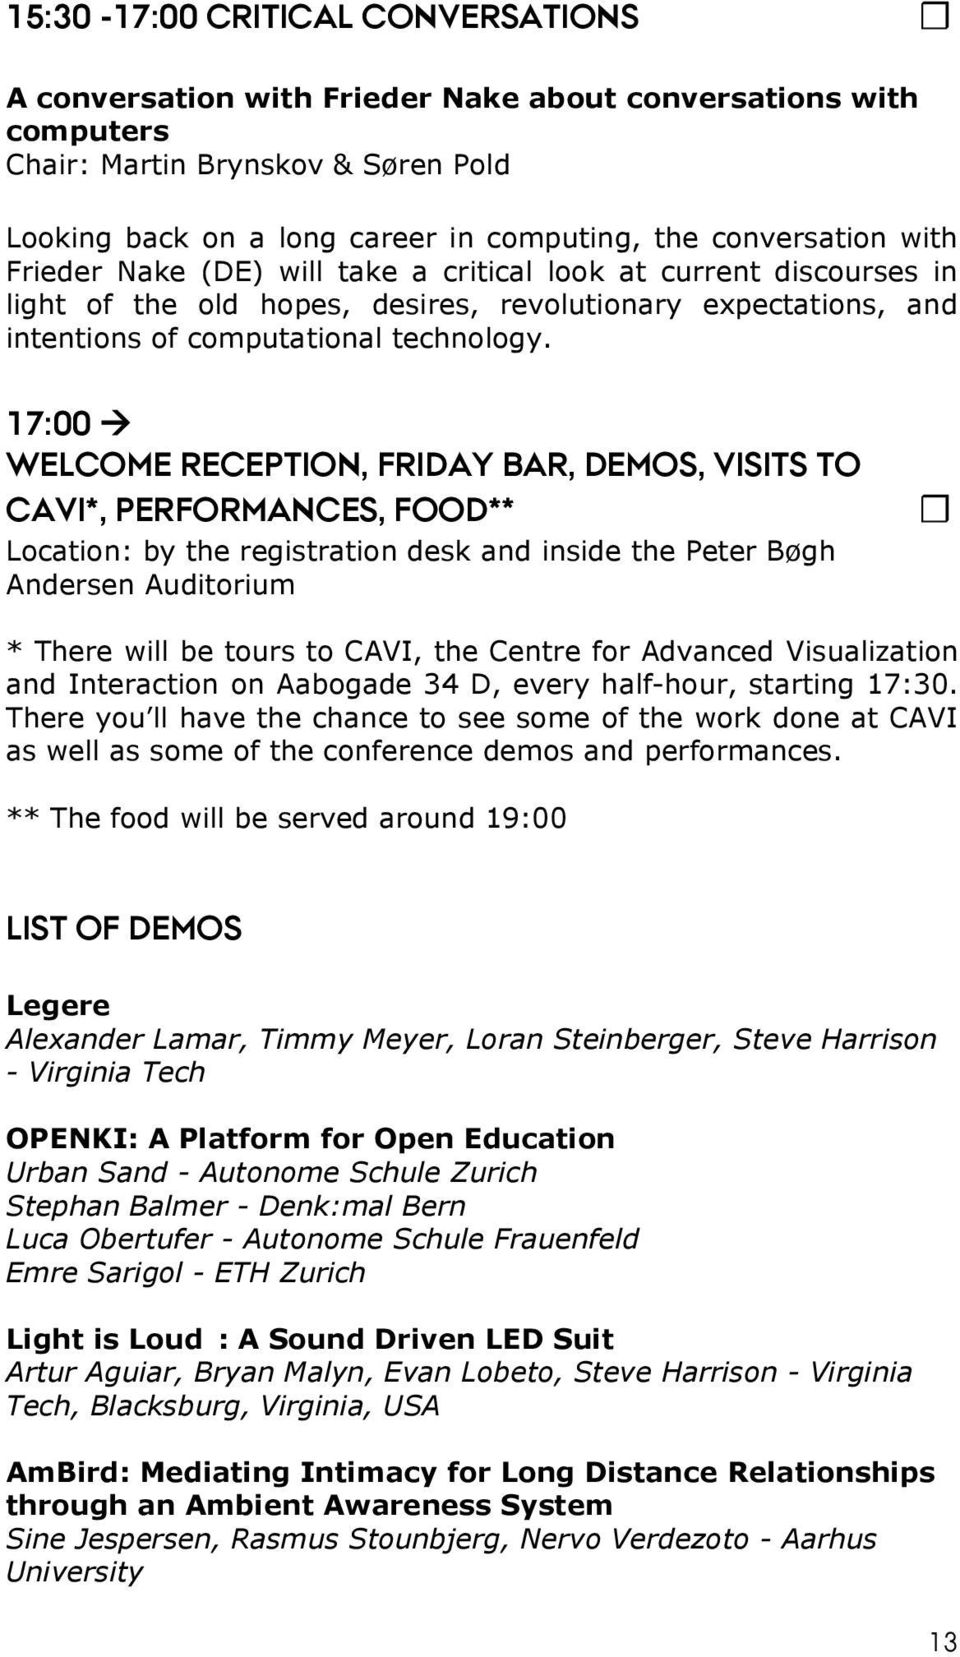 WELCOME RECEPTION, FRIDAY BAR, DEMOS, VISITS TO CAVI*, PERFORMANCES, FOOD** Location: by the registration desk and inside the Peter Bøgh Andersen Auditorium * There will be tours to CAVI, the Centre